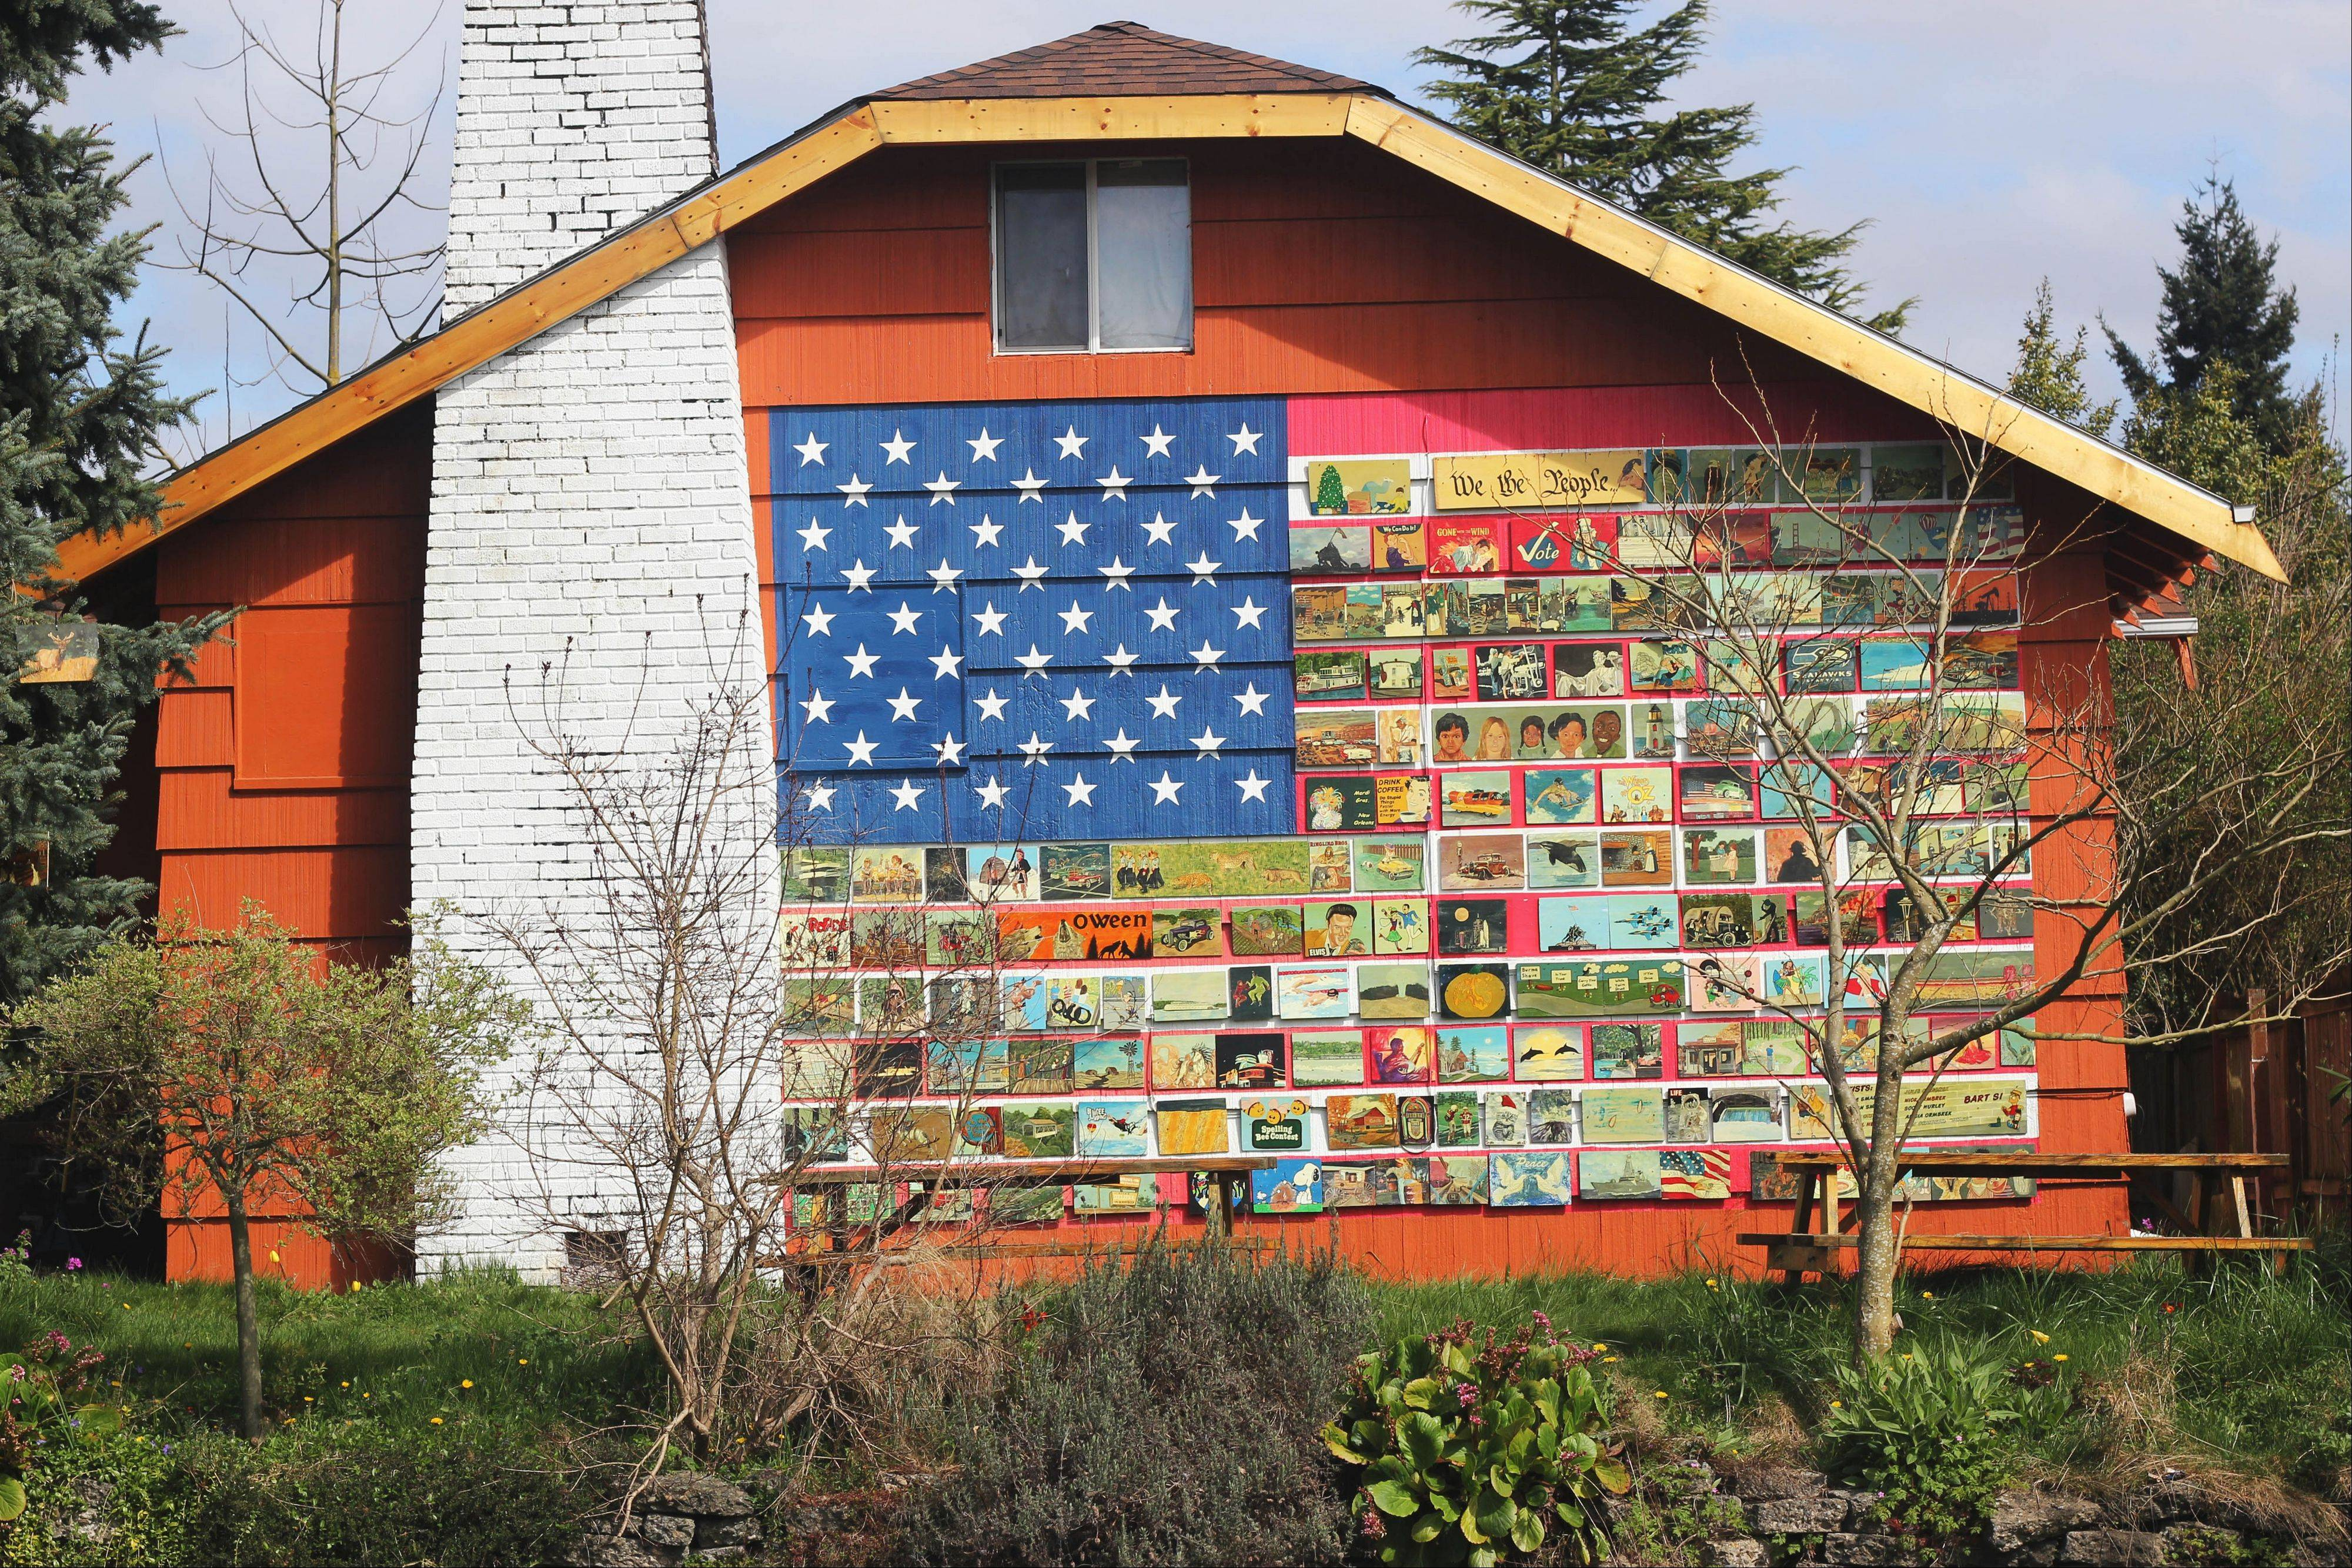 Richard Ormbrek�s house in Seattle is decorated with a 20-foot-wide American flag made up of 180 individually painted tiles.